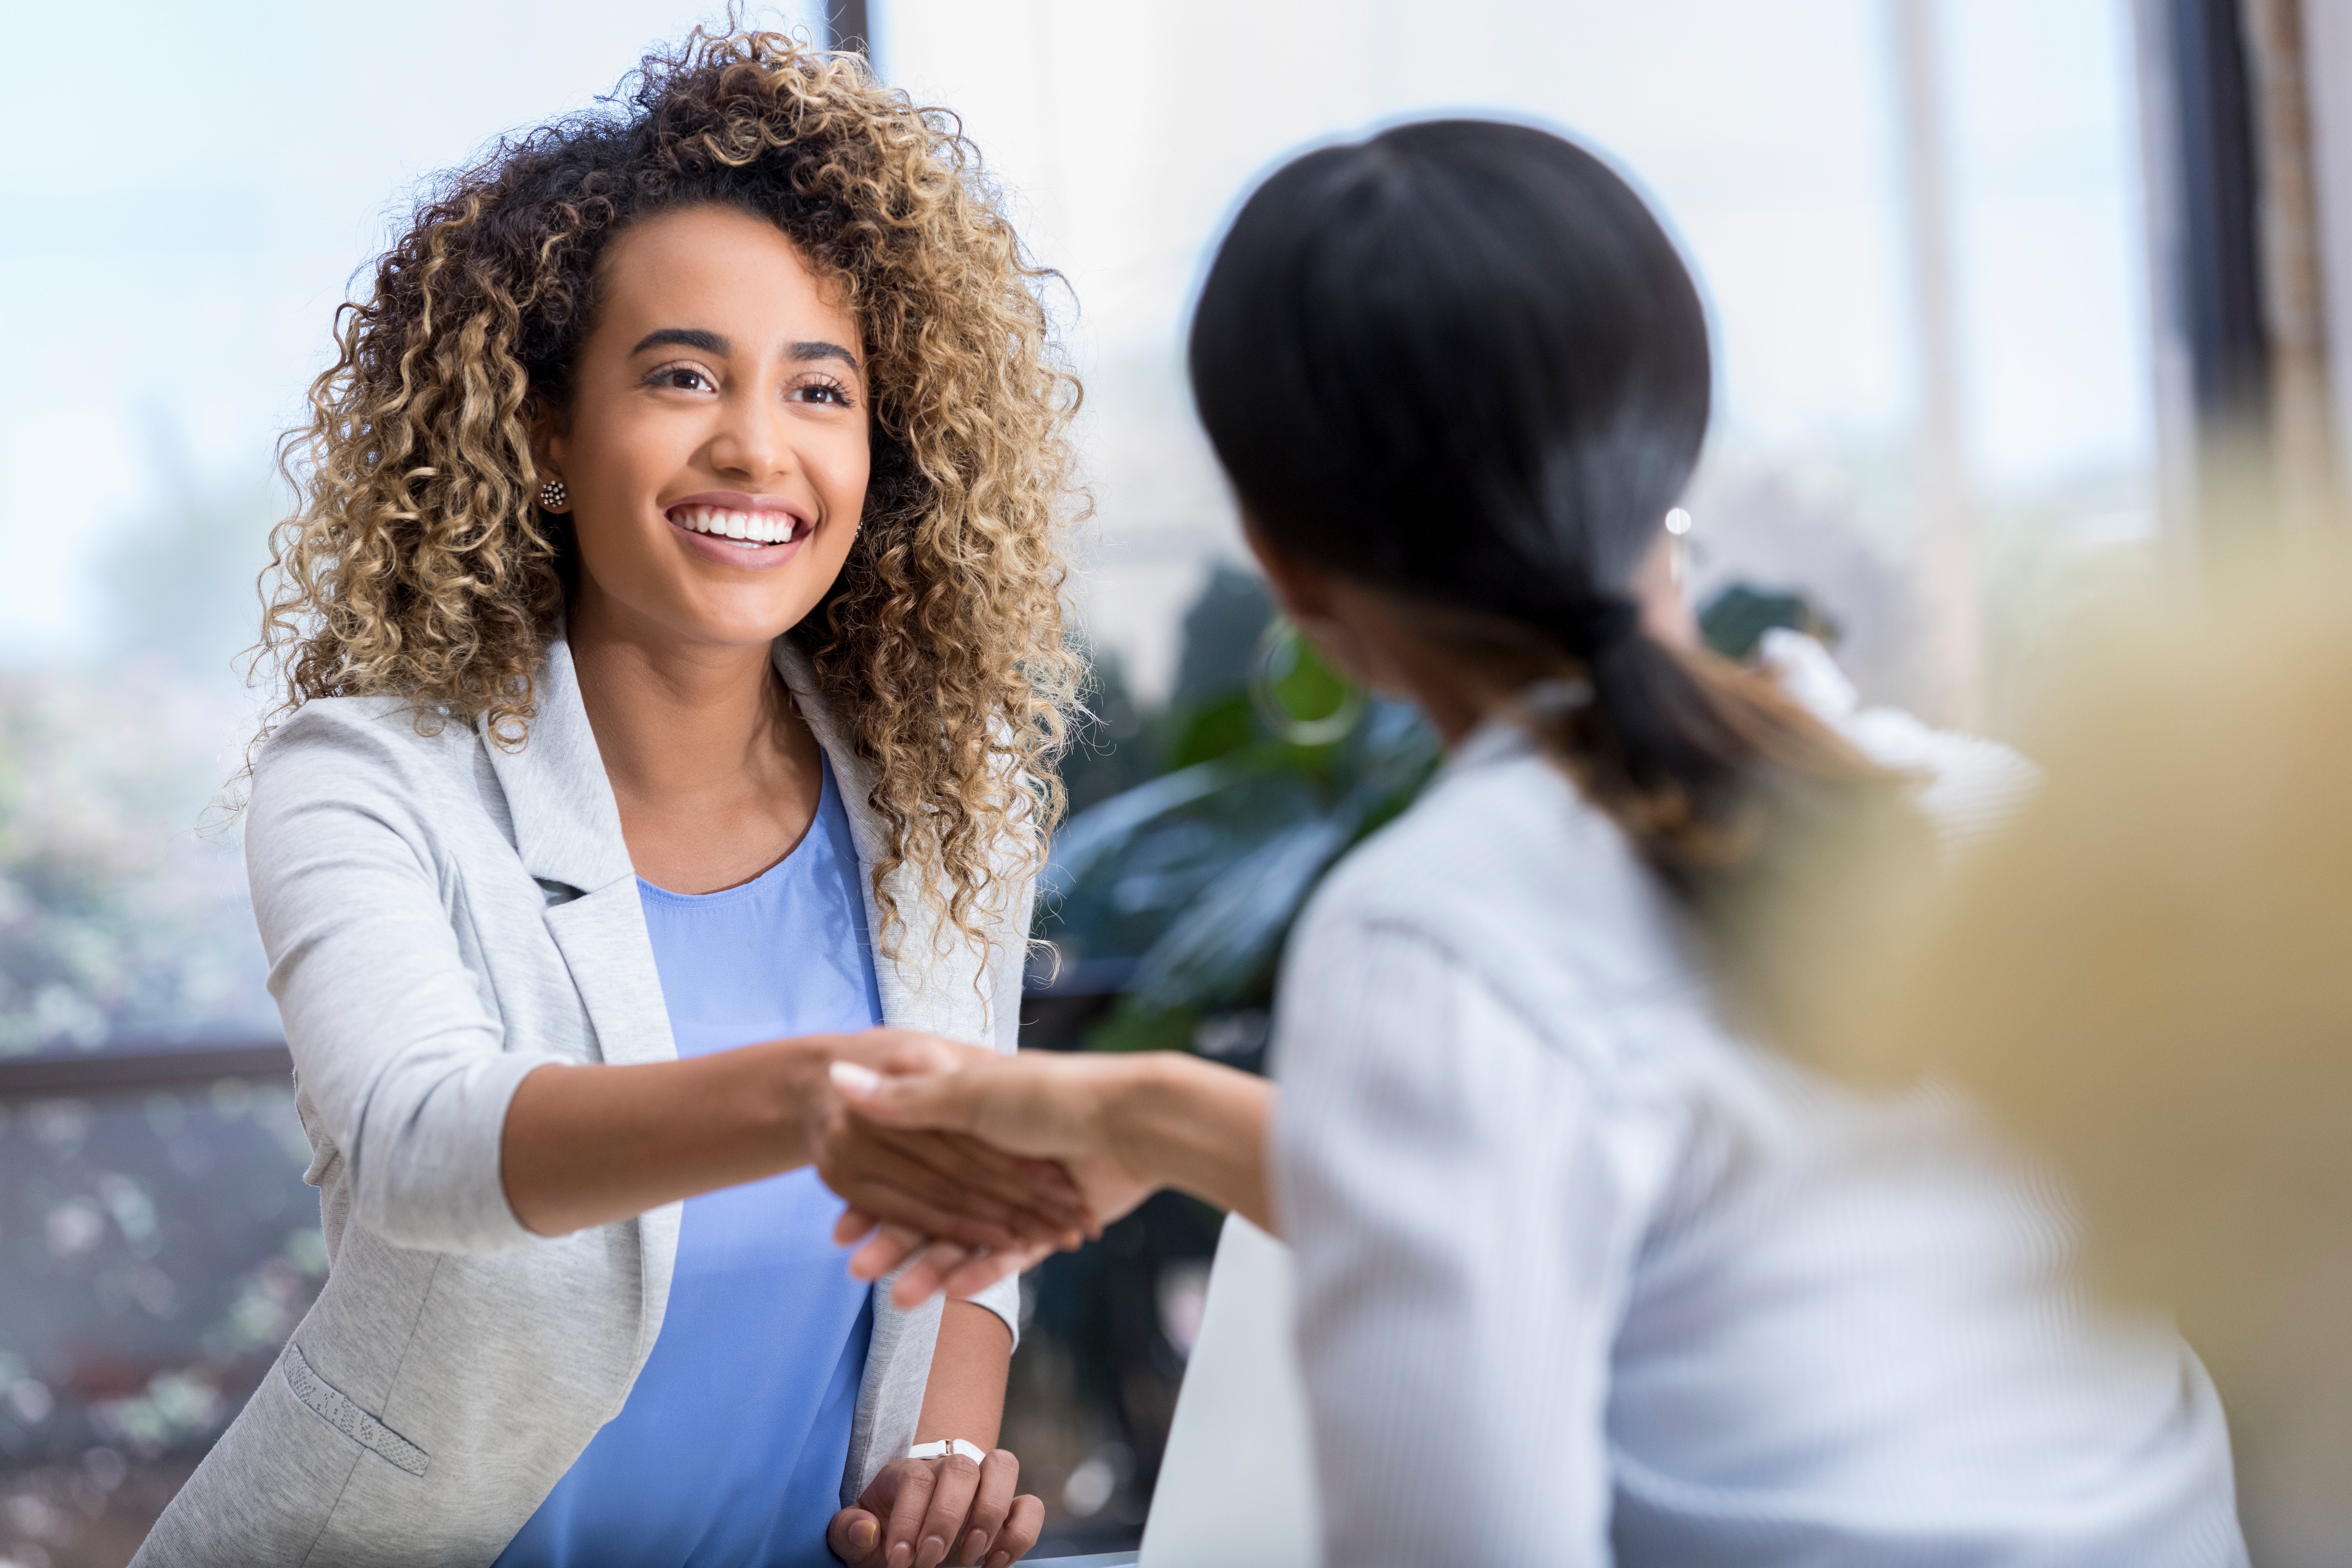 Young businesswoman greets colleague